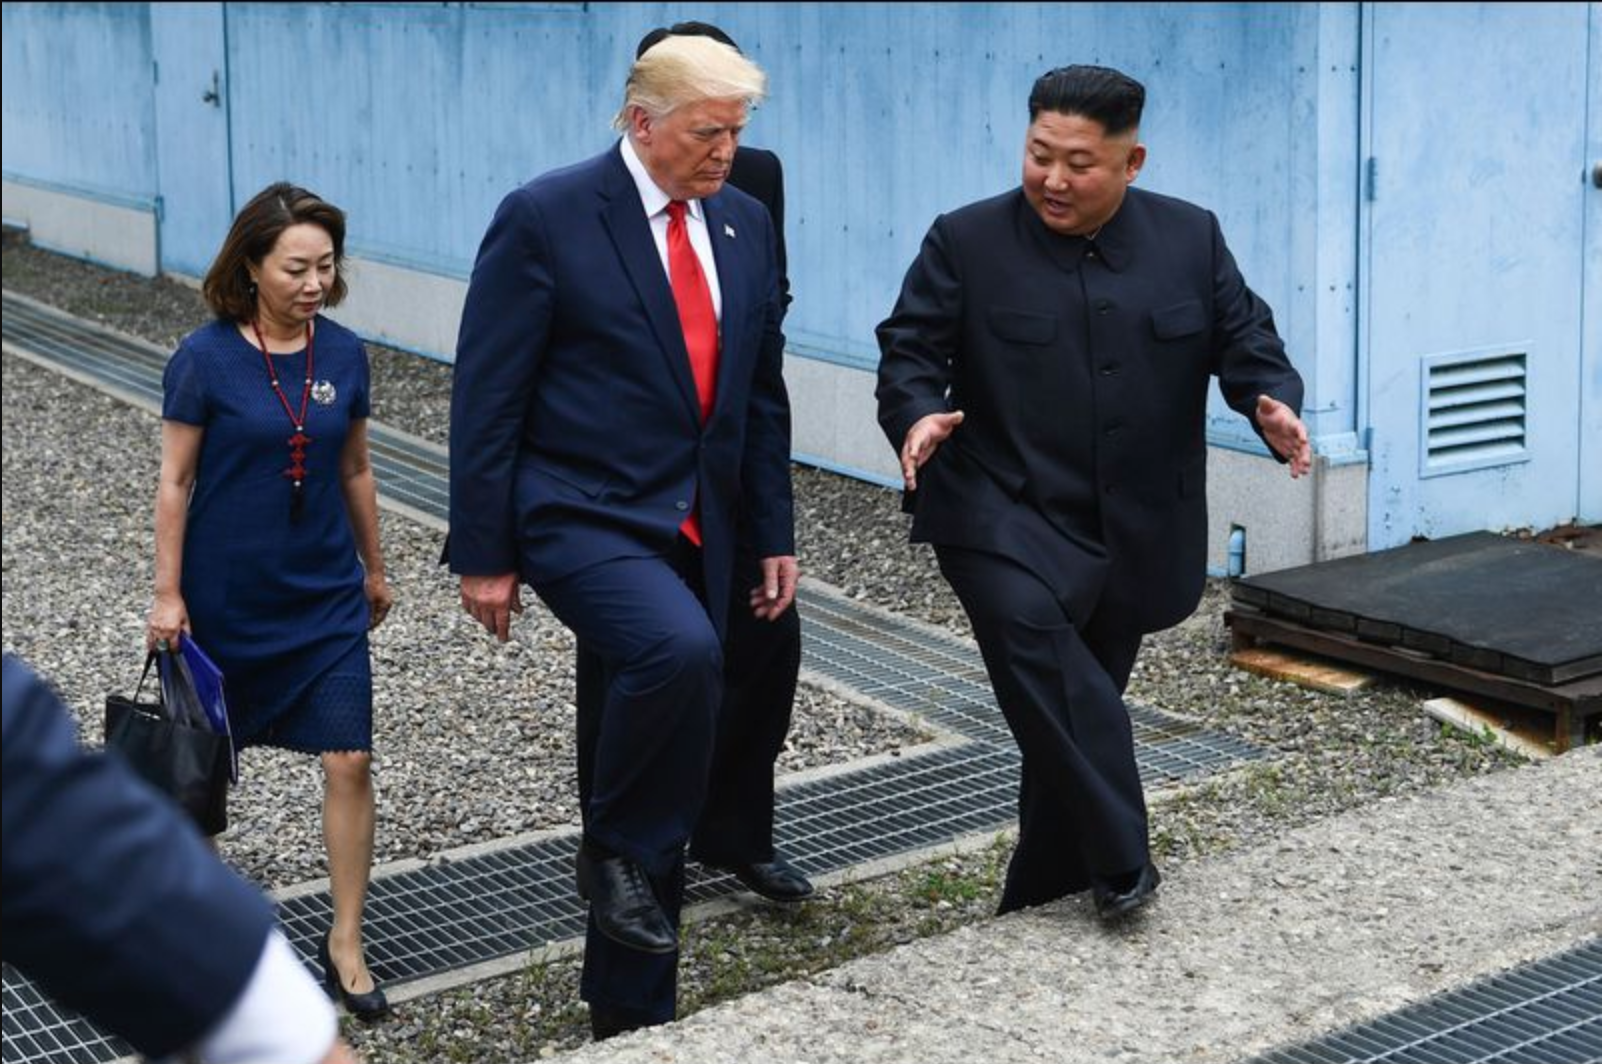 President Donald Trump and North Korean leader Kim Jong Un walk together south of the Military Demarcation Line